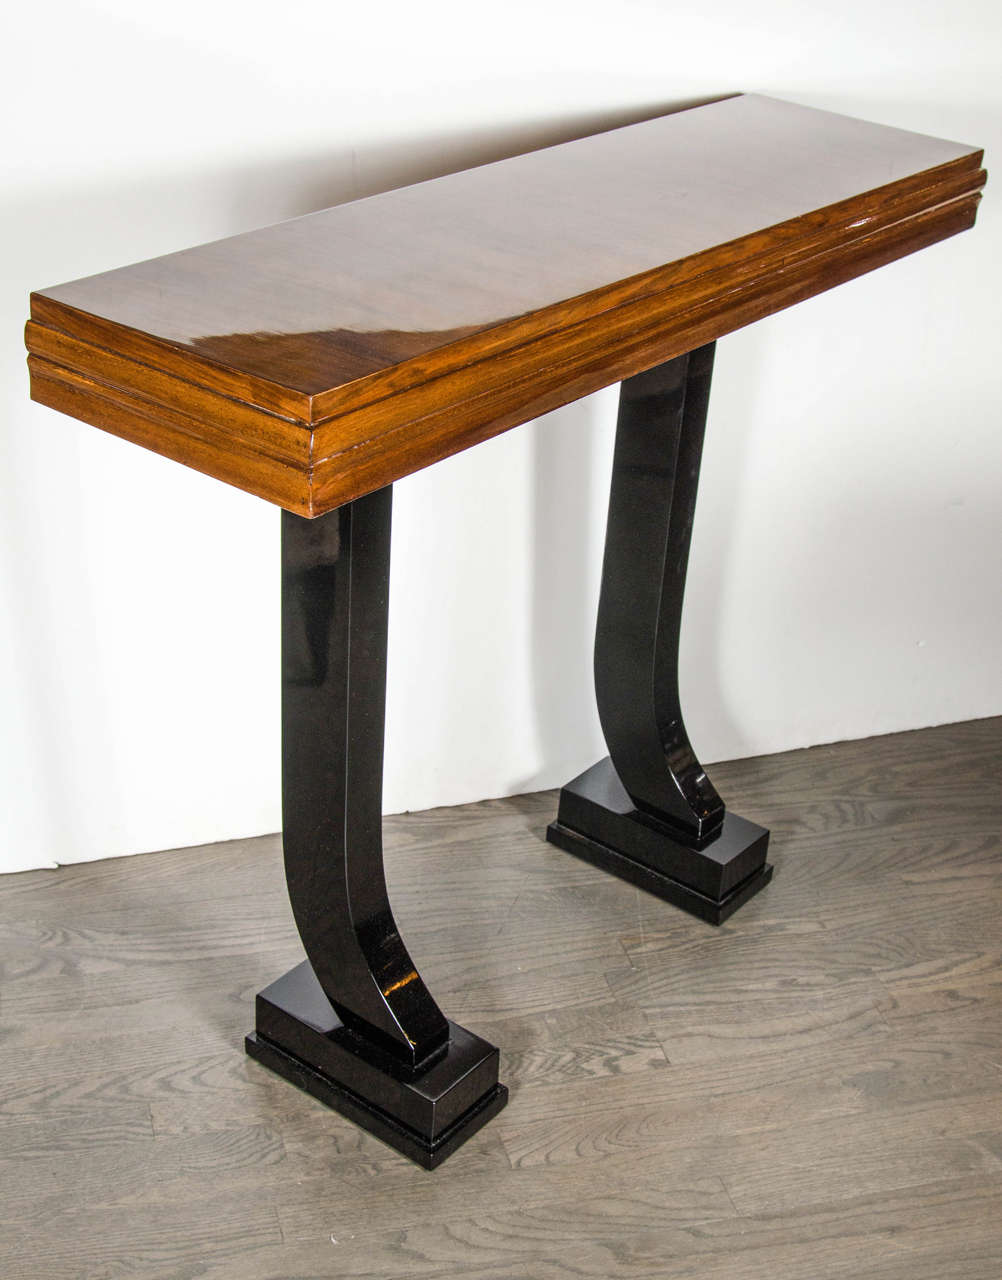 Art Deco Console Table With Scroll Leg Design For Sale At 1stdibs